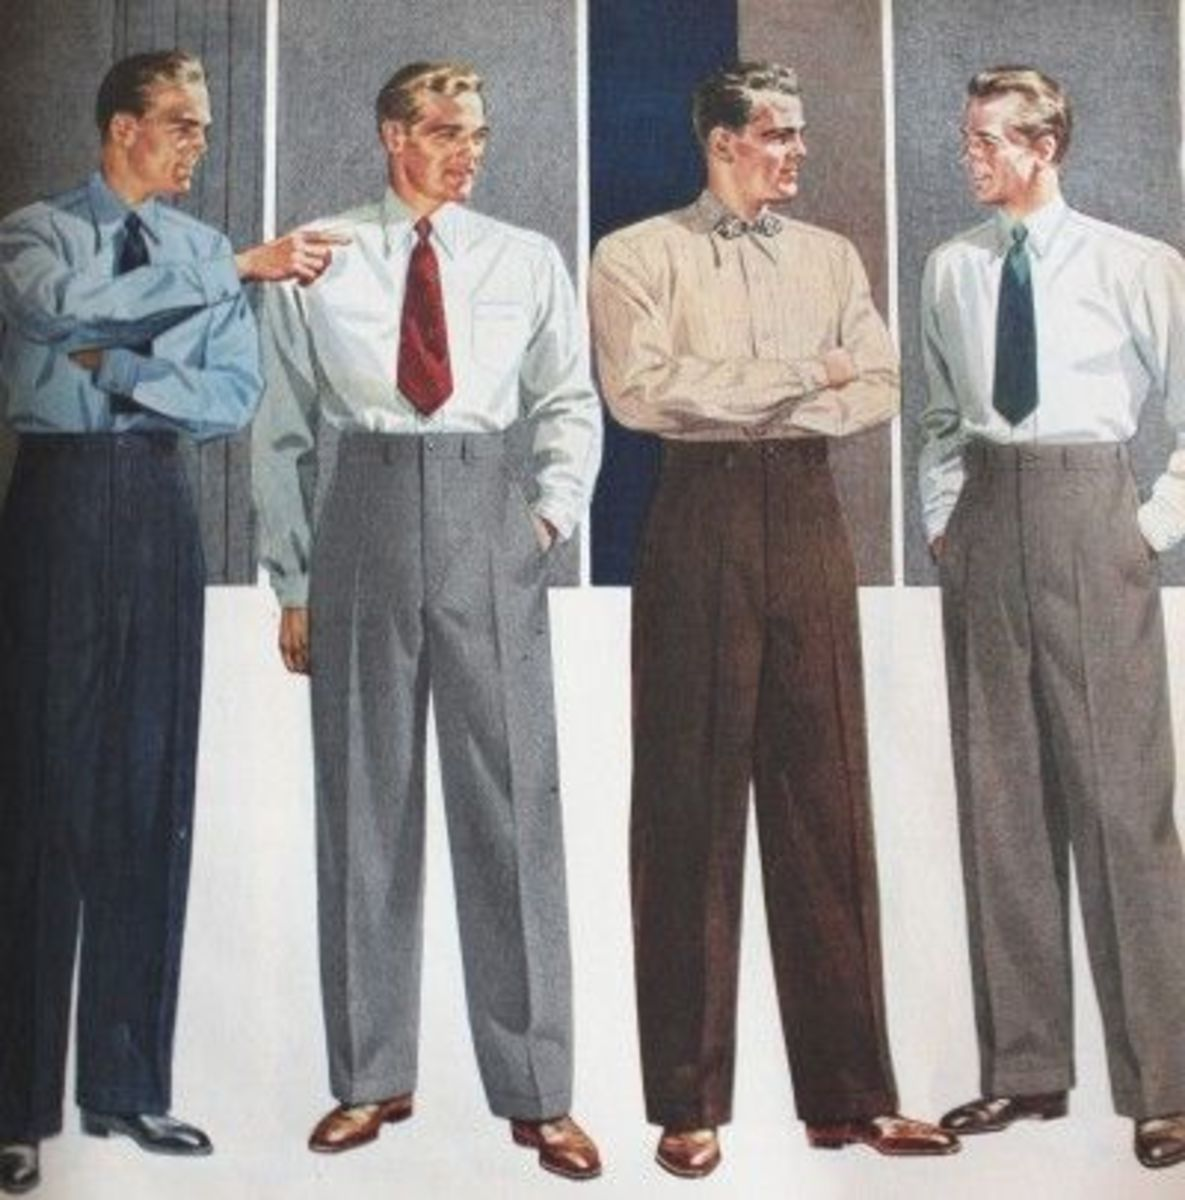 Bulletin: Men's Pleated Pants and White Socks Have Vanished